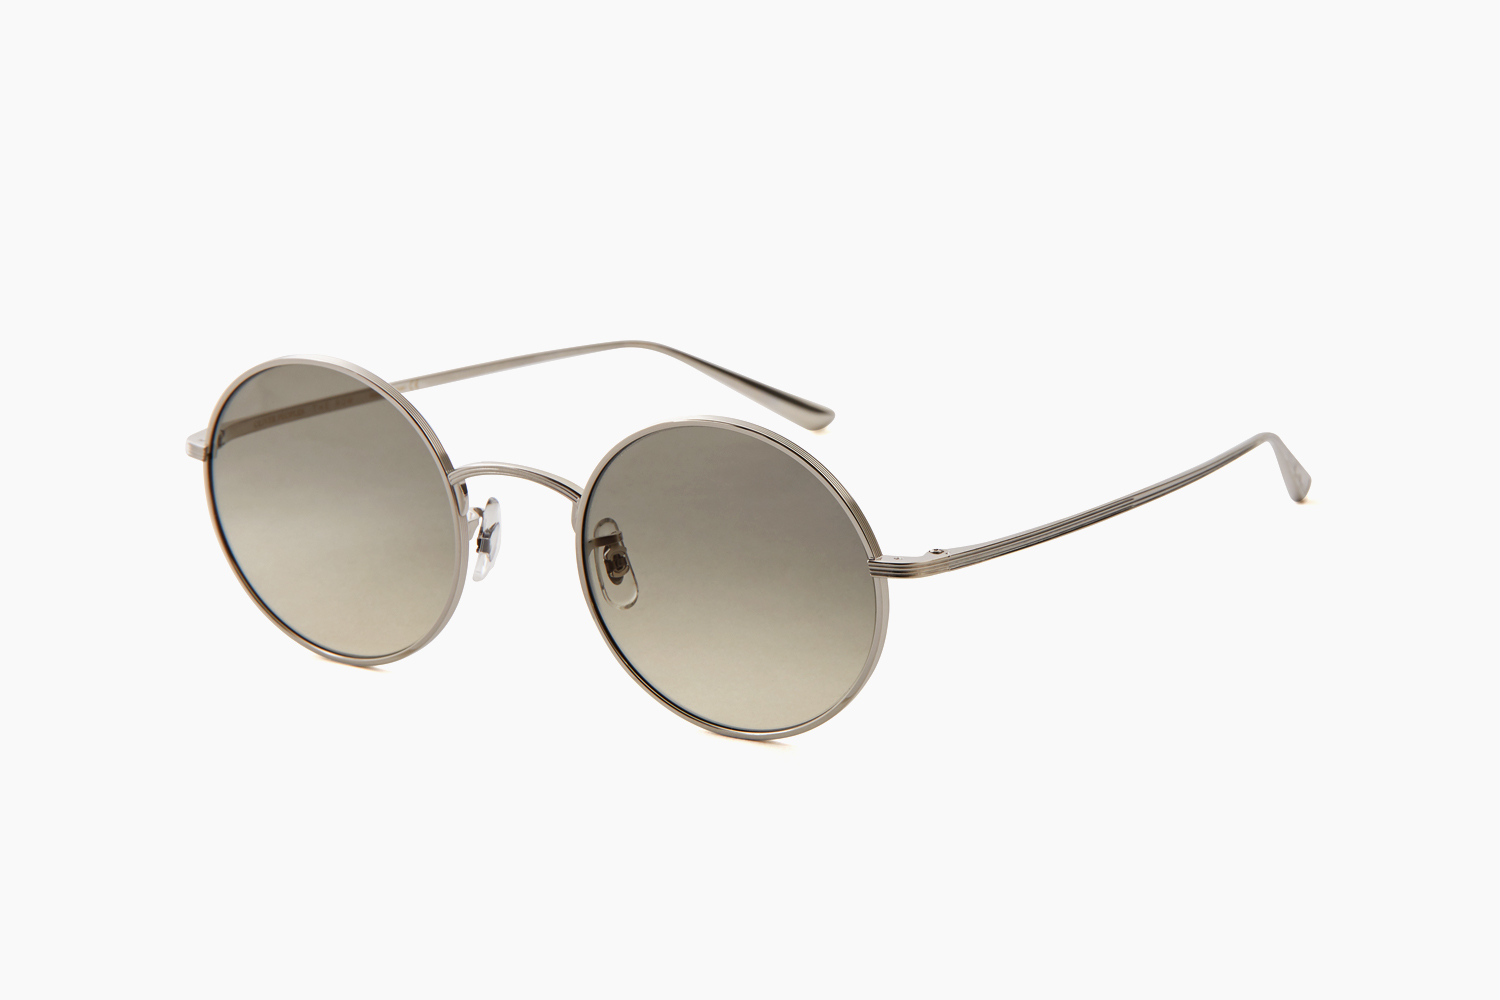 OLIVER PEOPLES THE ROW|After Midnight - Silver|OLIVER PEOPLES